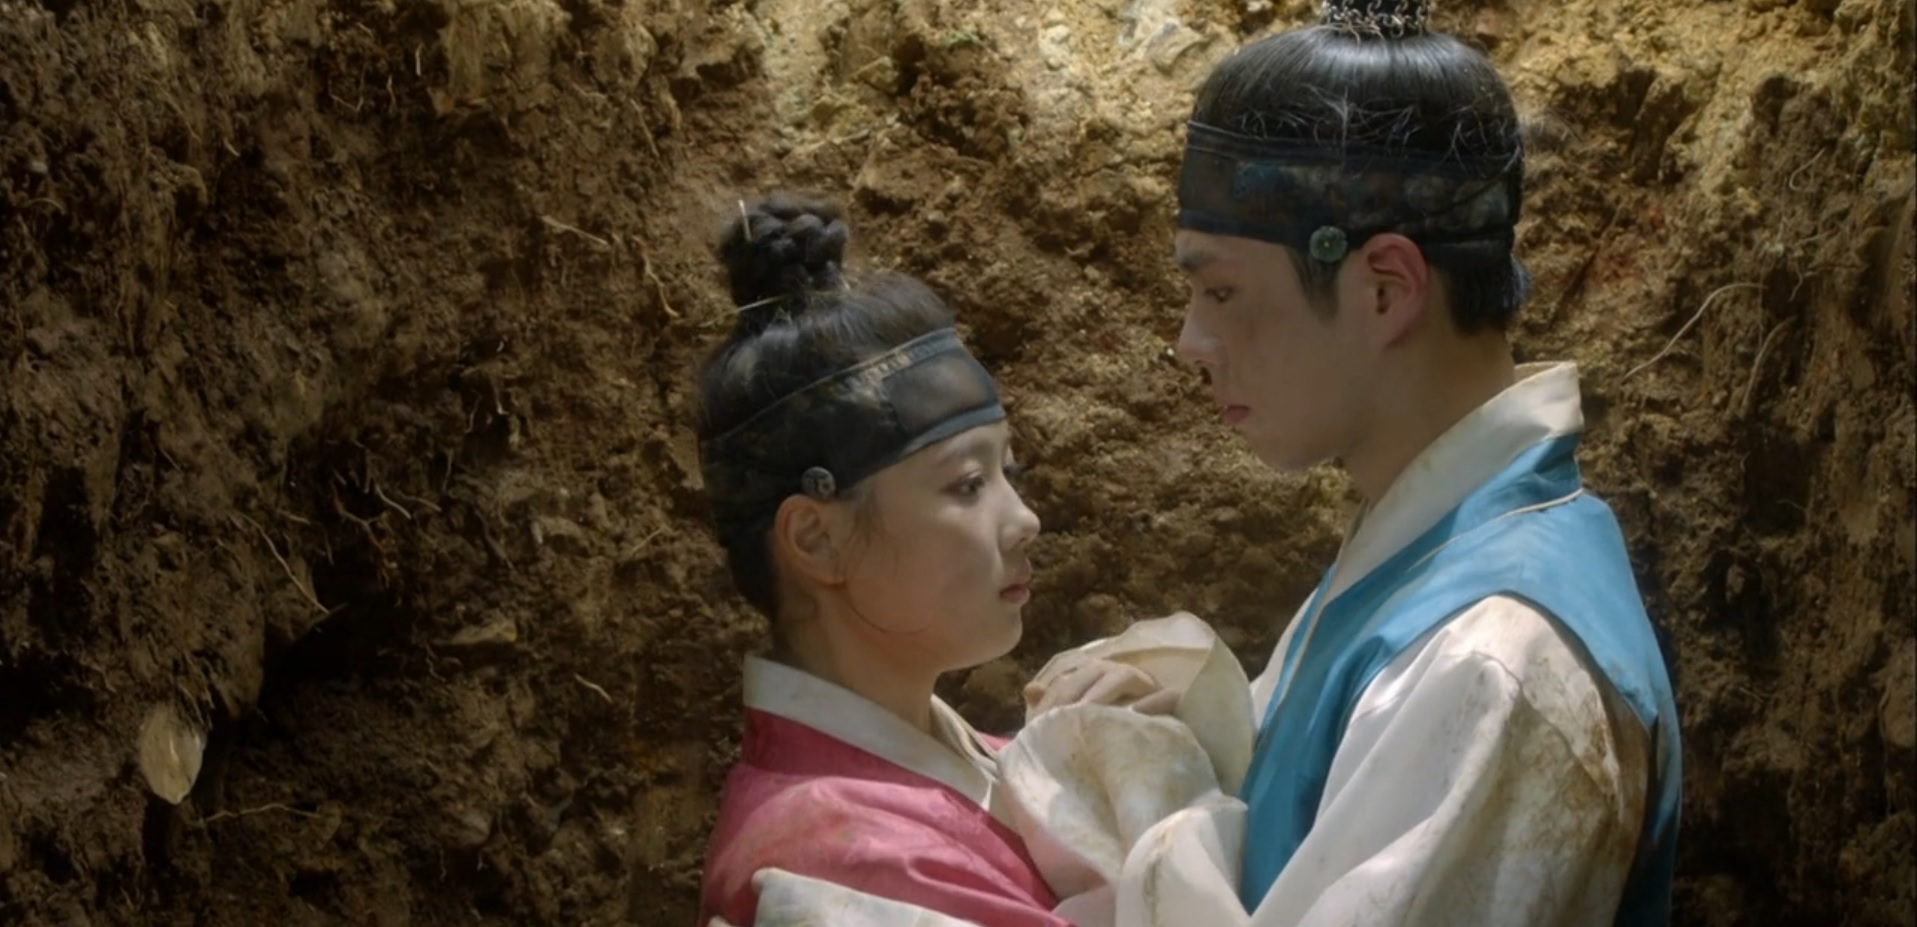 Moonlight Drawn by Clouds Episode 1